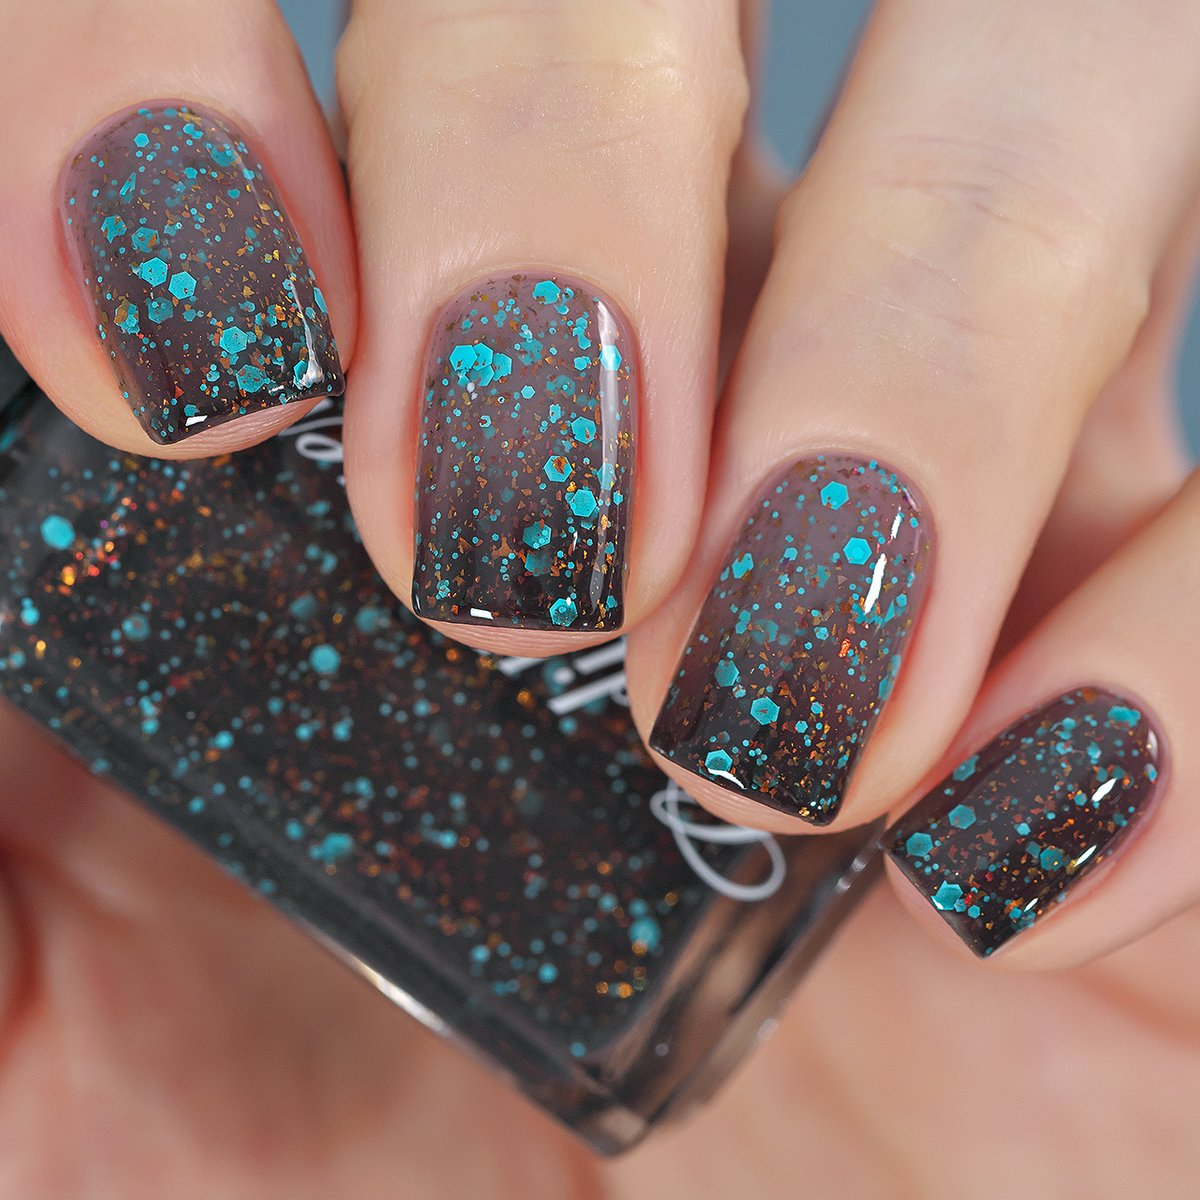 *PRE-SALE* Cadillacquer - Winter 2021 - Night Goddess (Thermal)